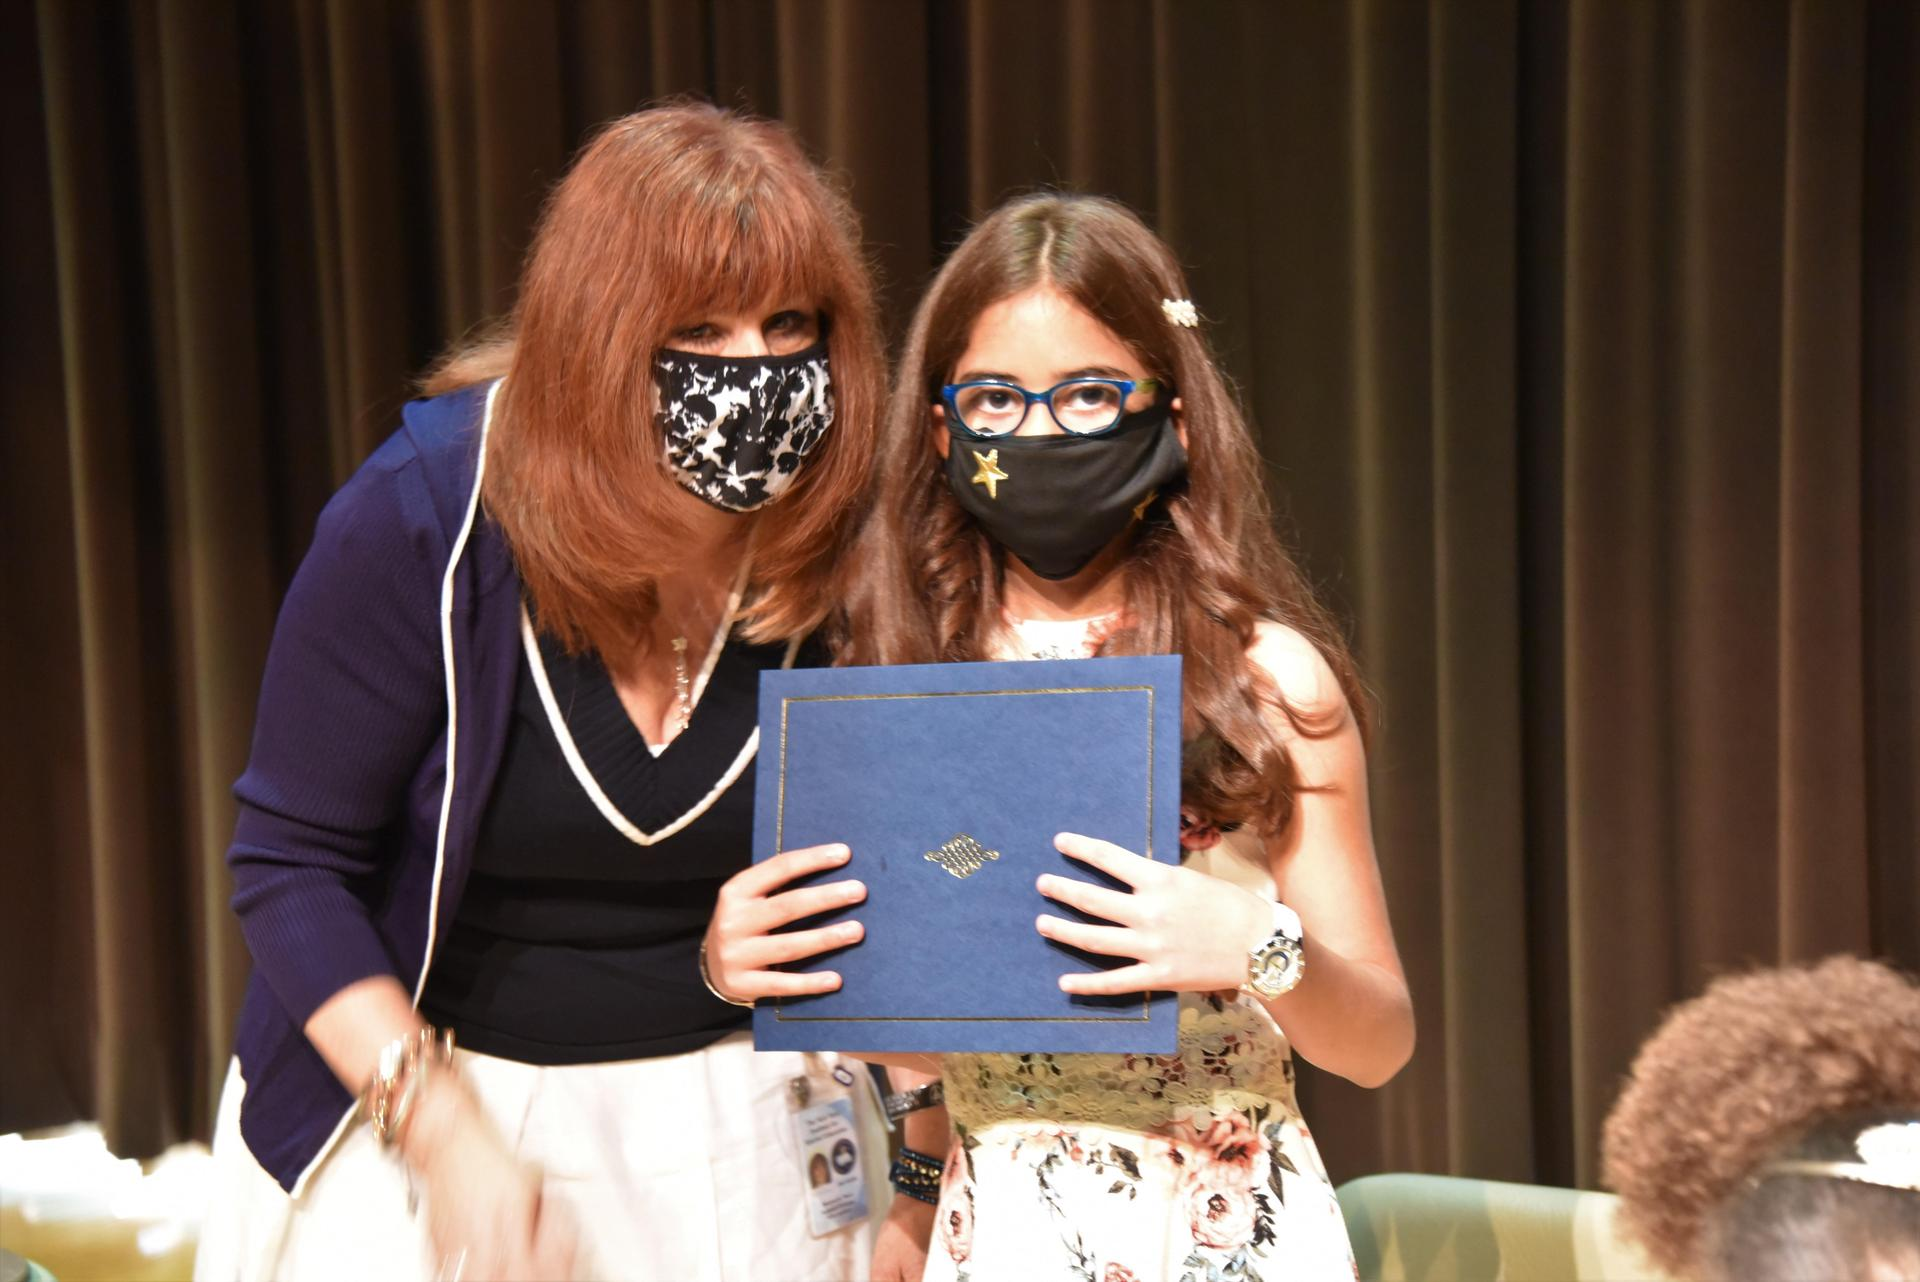 A teacher hands a diploma to a student as they both pose for a photograph